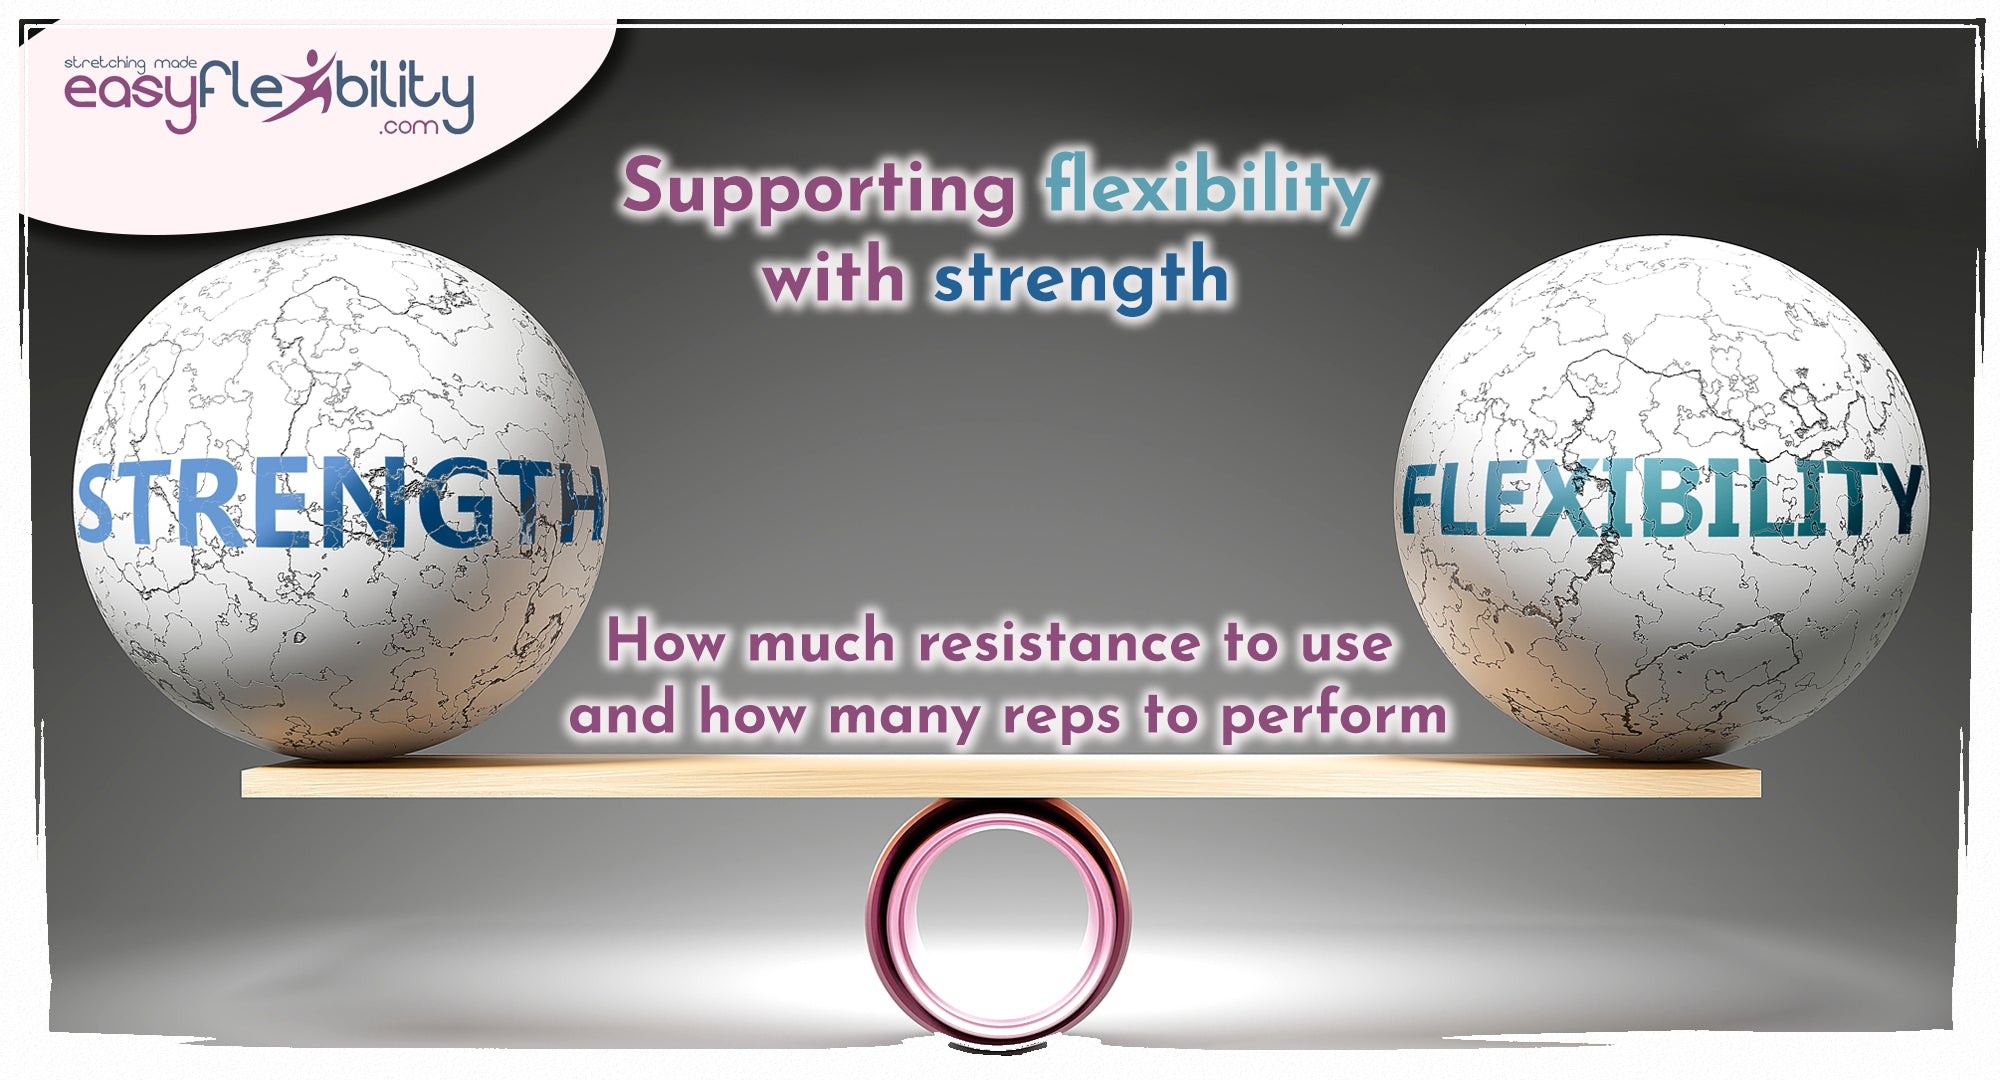 Supporting flexibility with strength